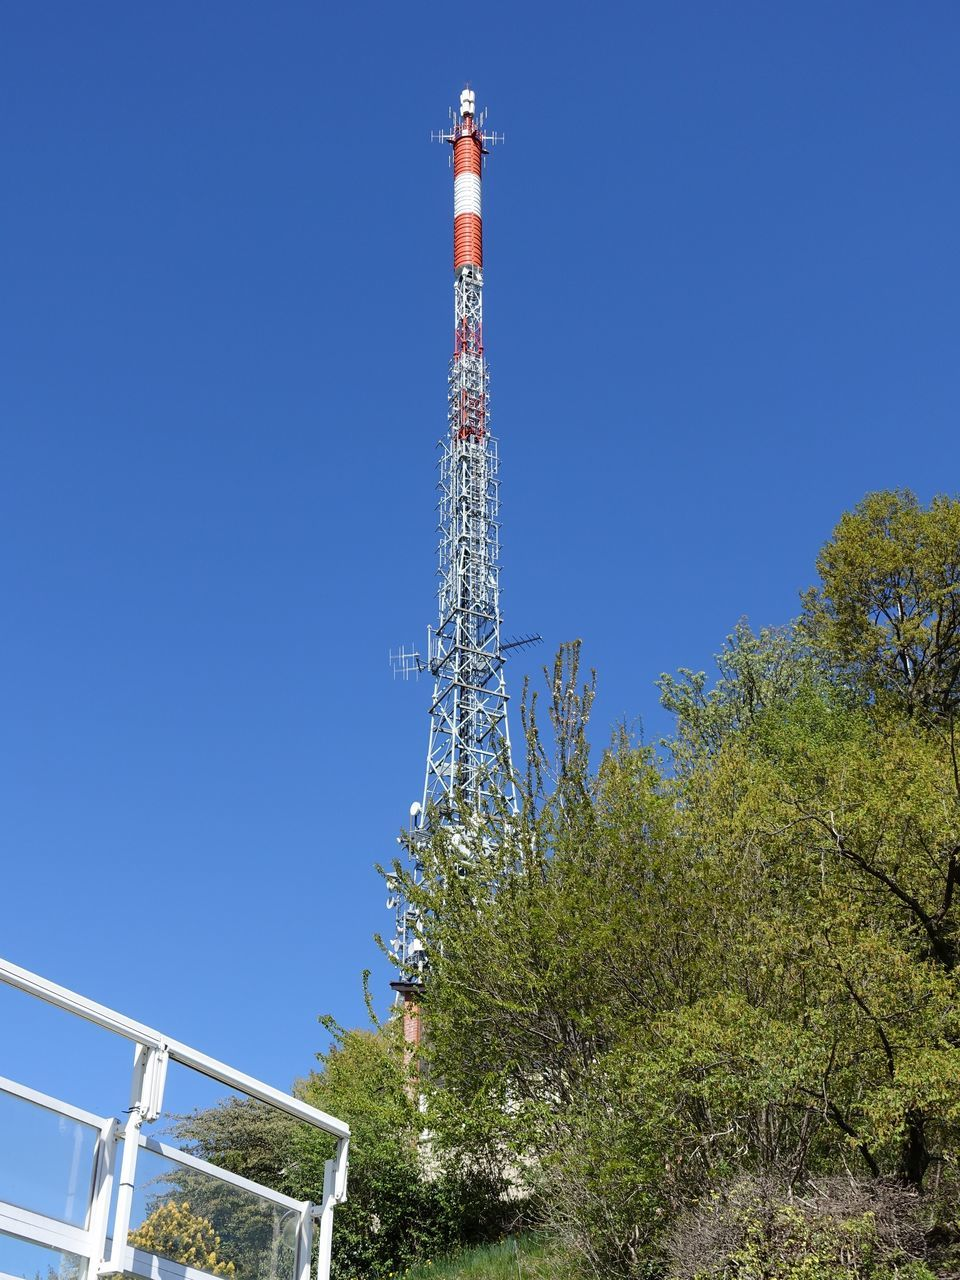 clear sky, tree, tower, copy space, low angle view, day, blue, outdoors, built structure, no people, nature, architecture